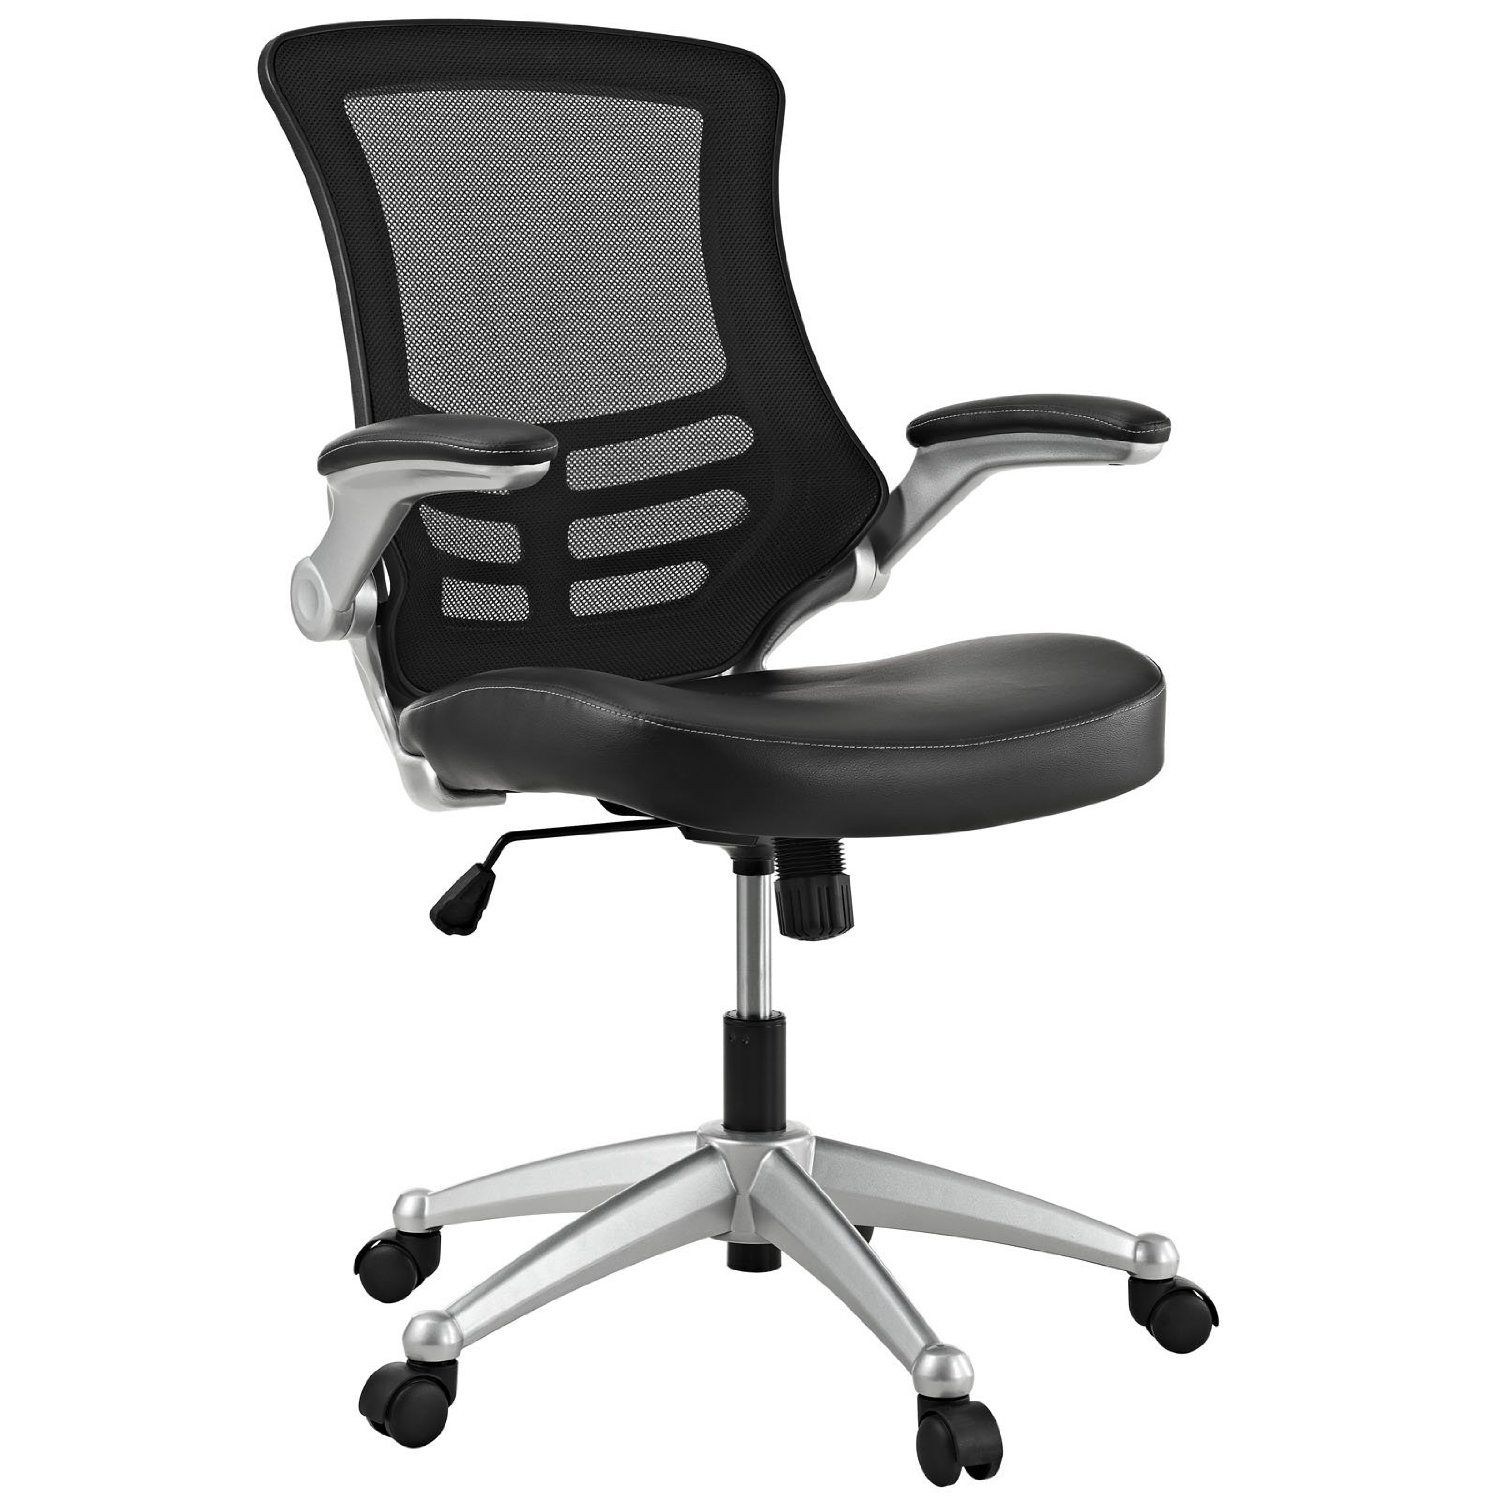 llc amazon service md chair va furniture dc watch office by experts in assembly chairs